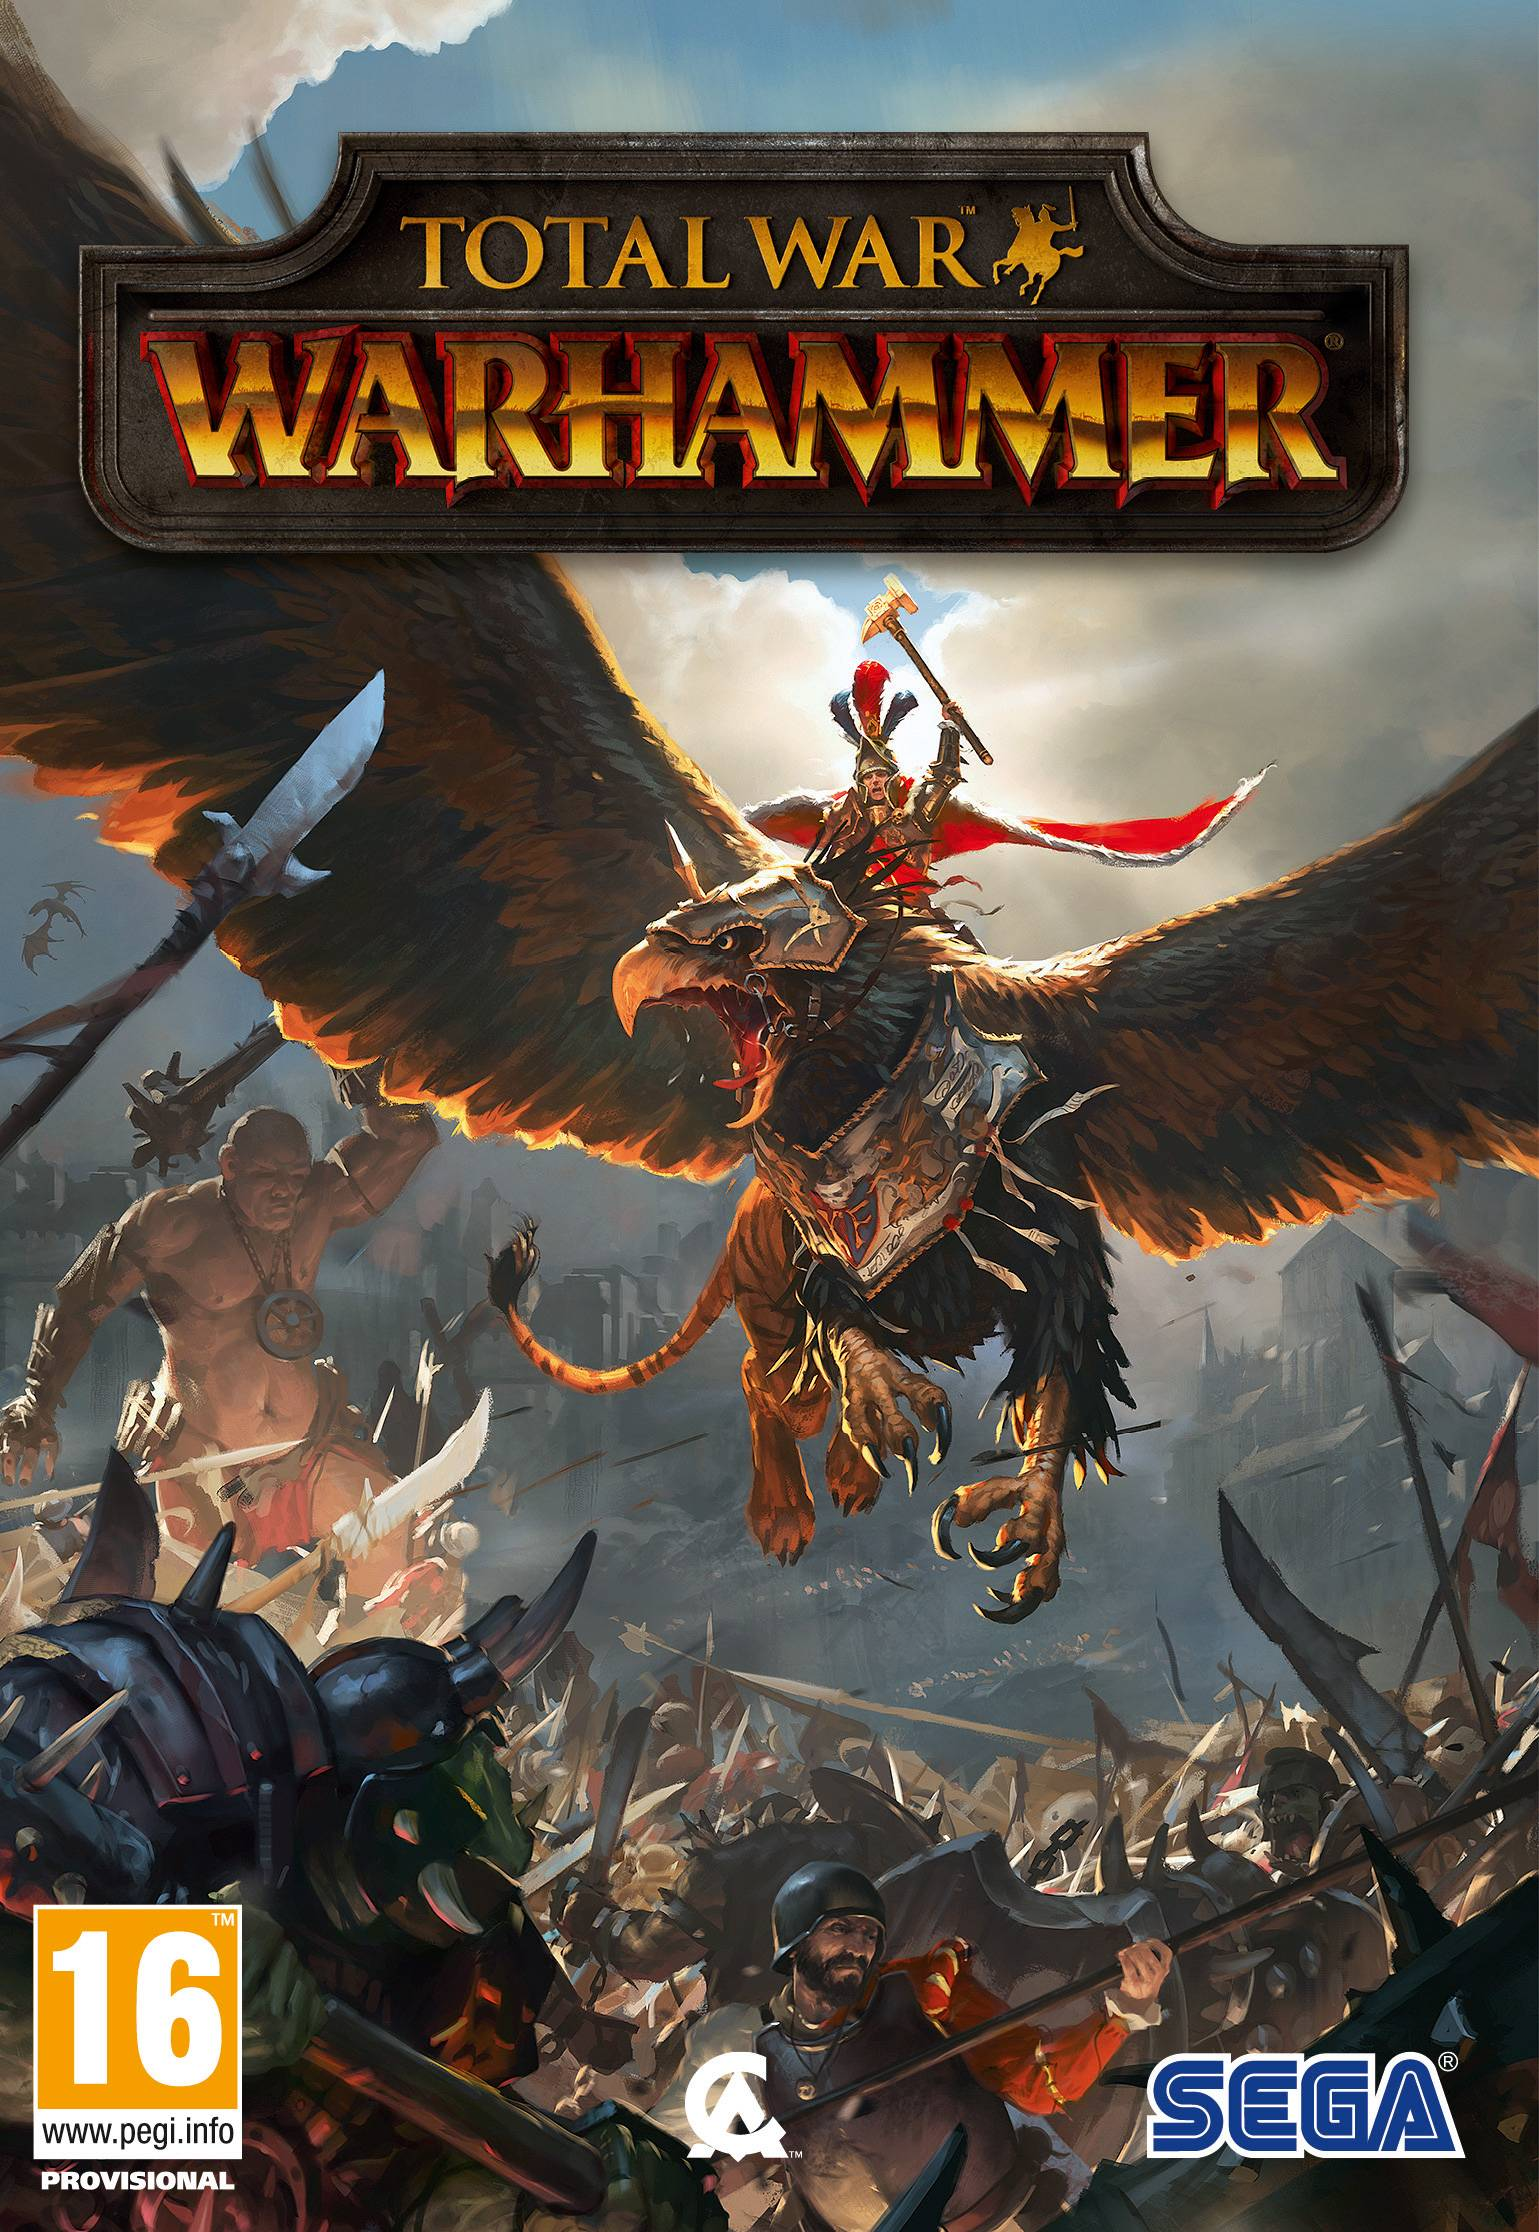 Total War: WARHAMMER (Steam Key) + GIFT